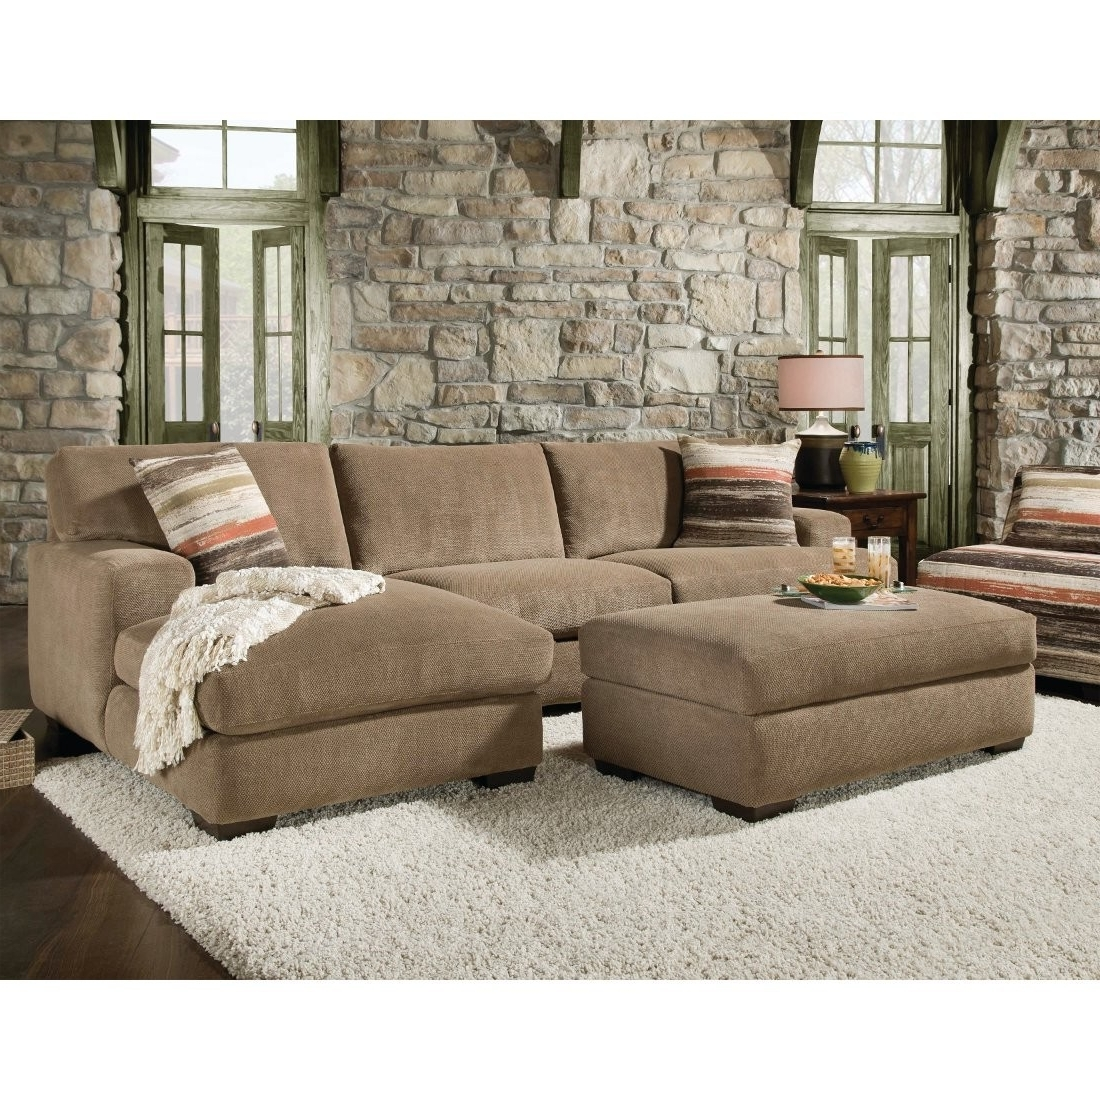 Well Liked Sofa : Extra Large Sectionals With Chaise Deep Sofas Deep Couches Pertaining To Sectional Sofas At Raymour And Flanigan (View 12 of 20)